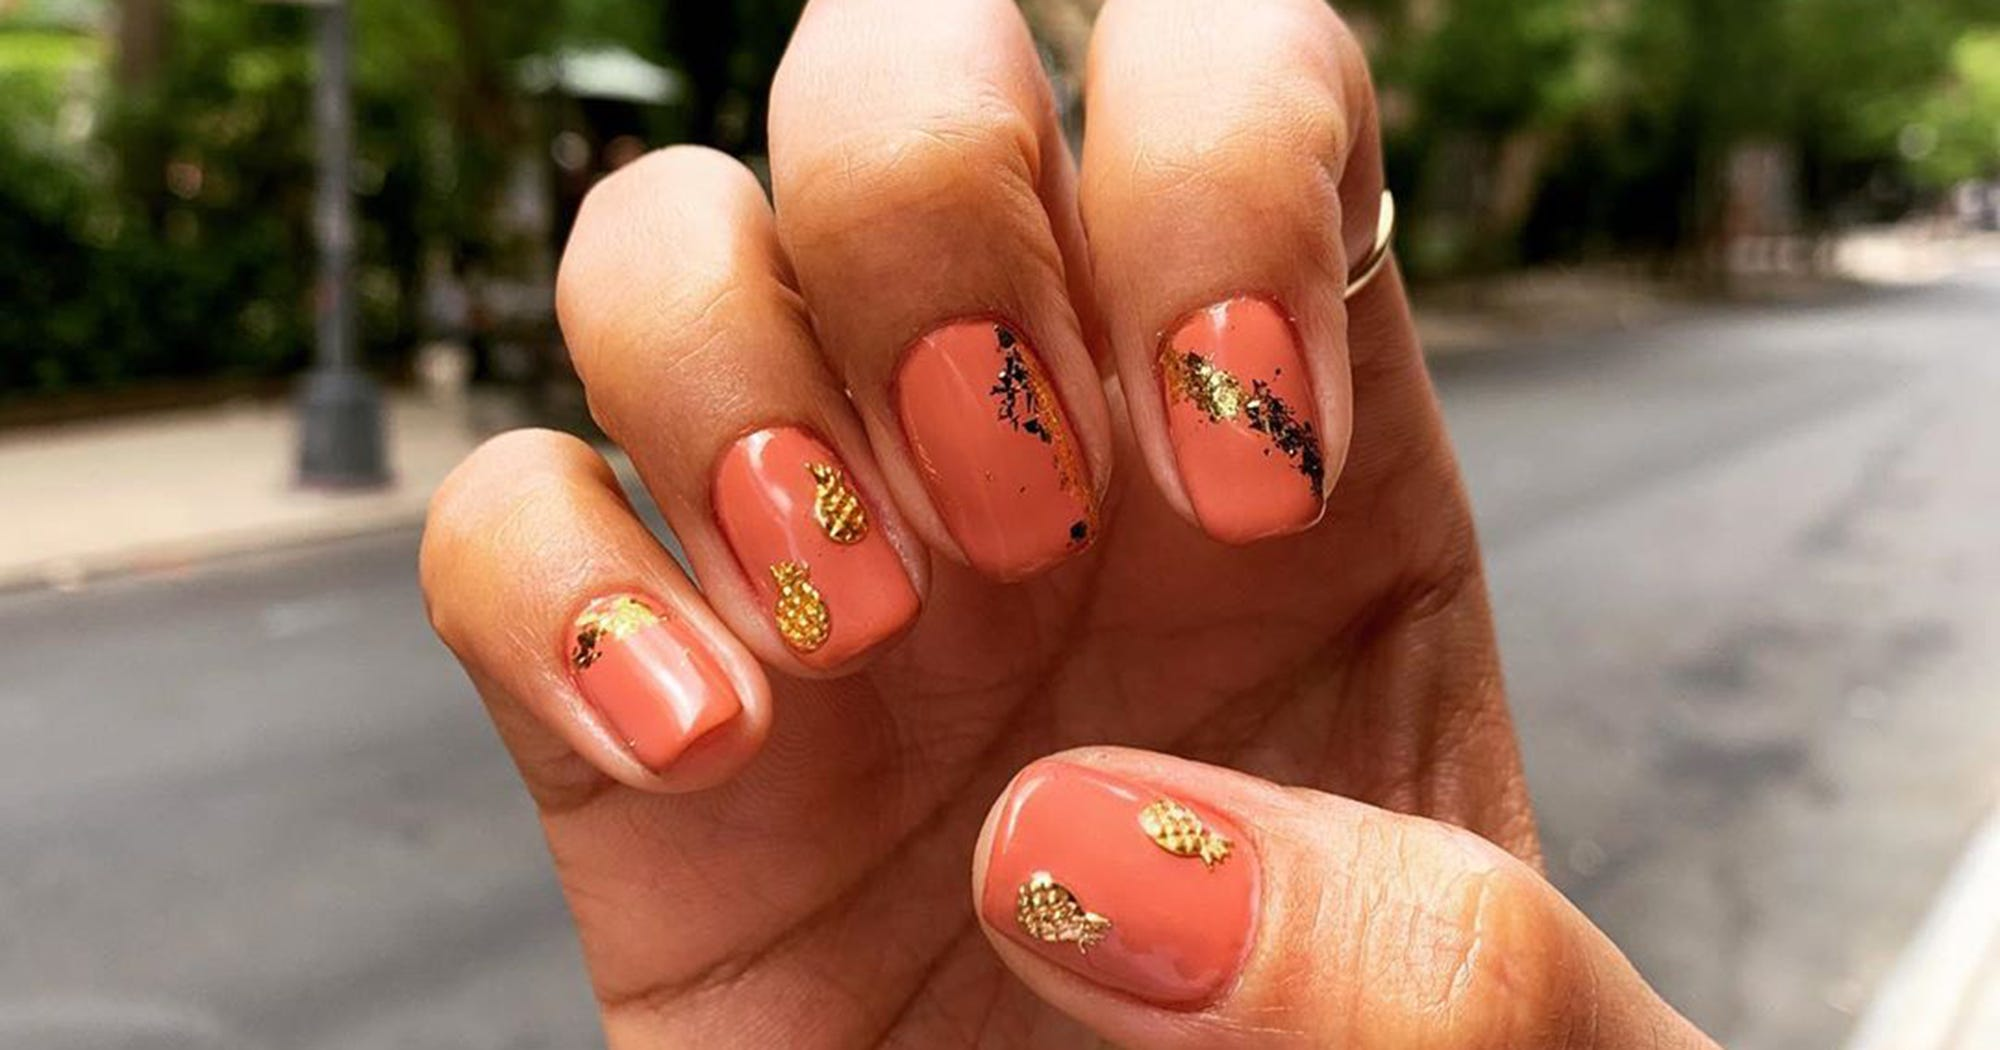 Best Coral Nail Polish Colors For Trendy Summer Nails